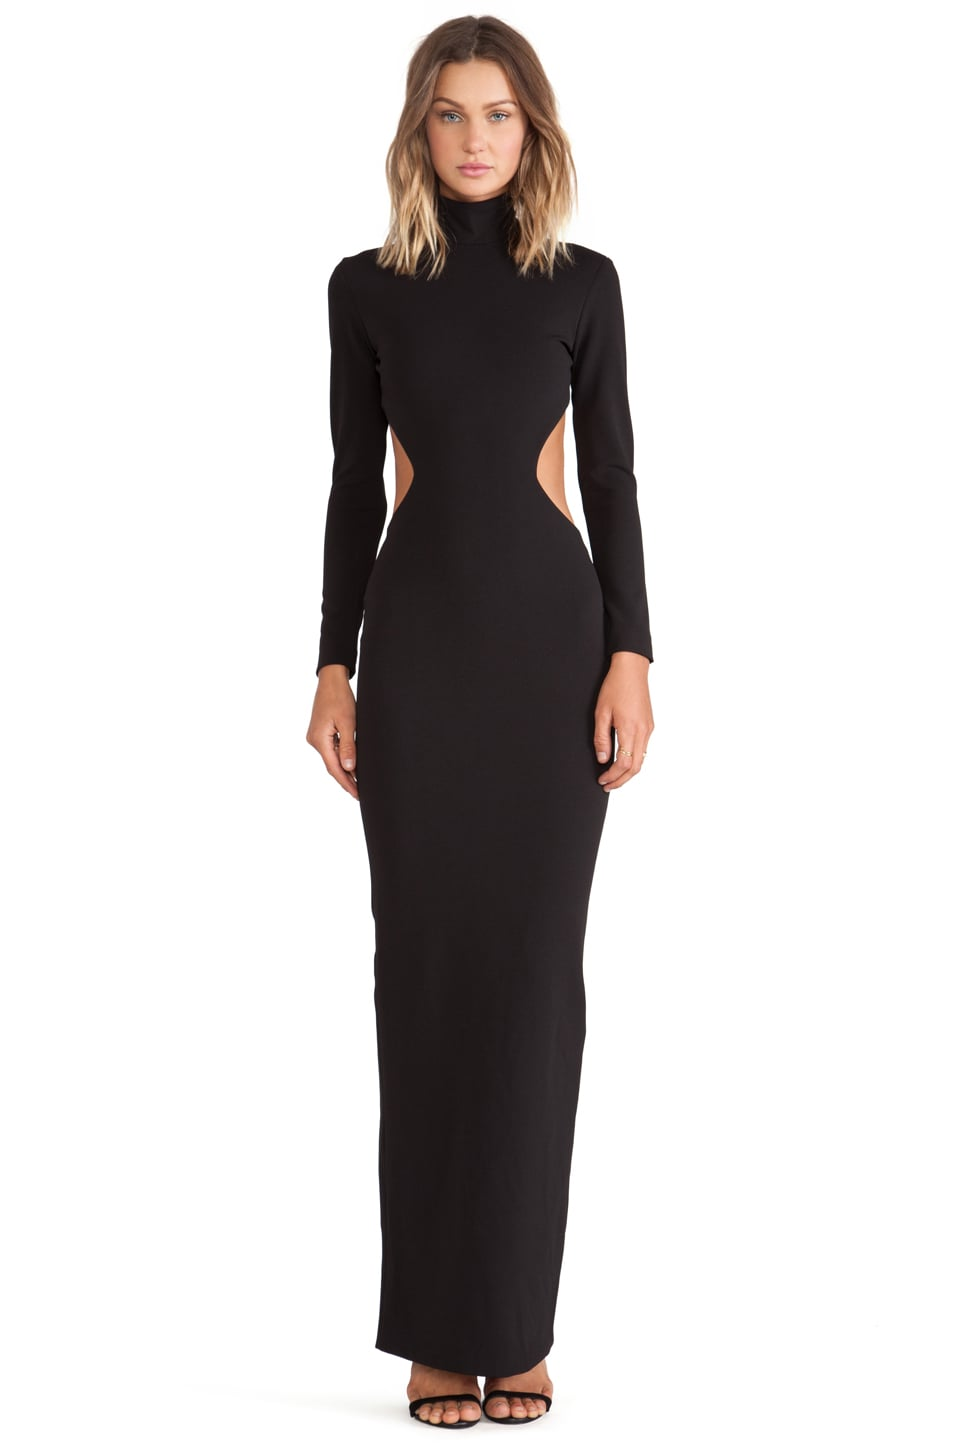 SOLACE London Bougie Maxi Dress in Black